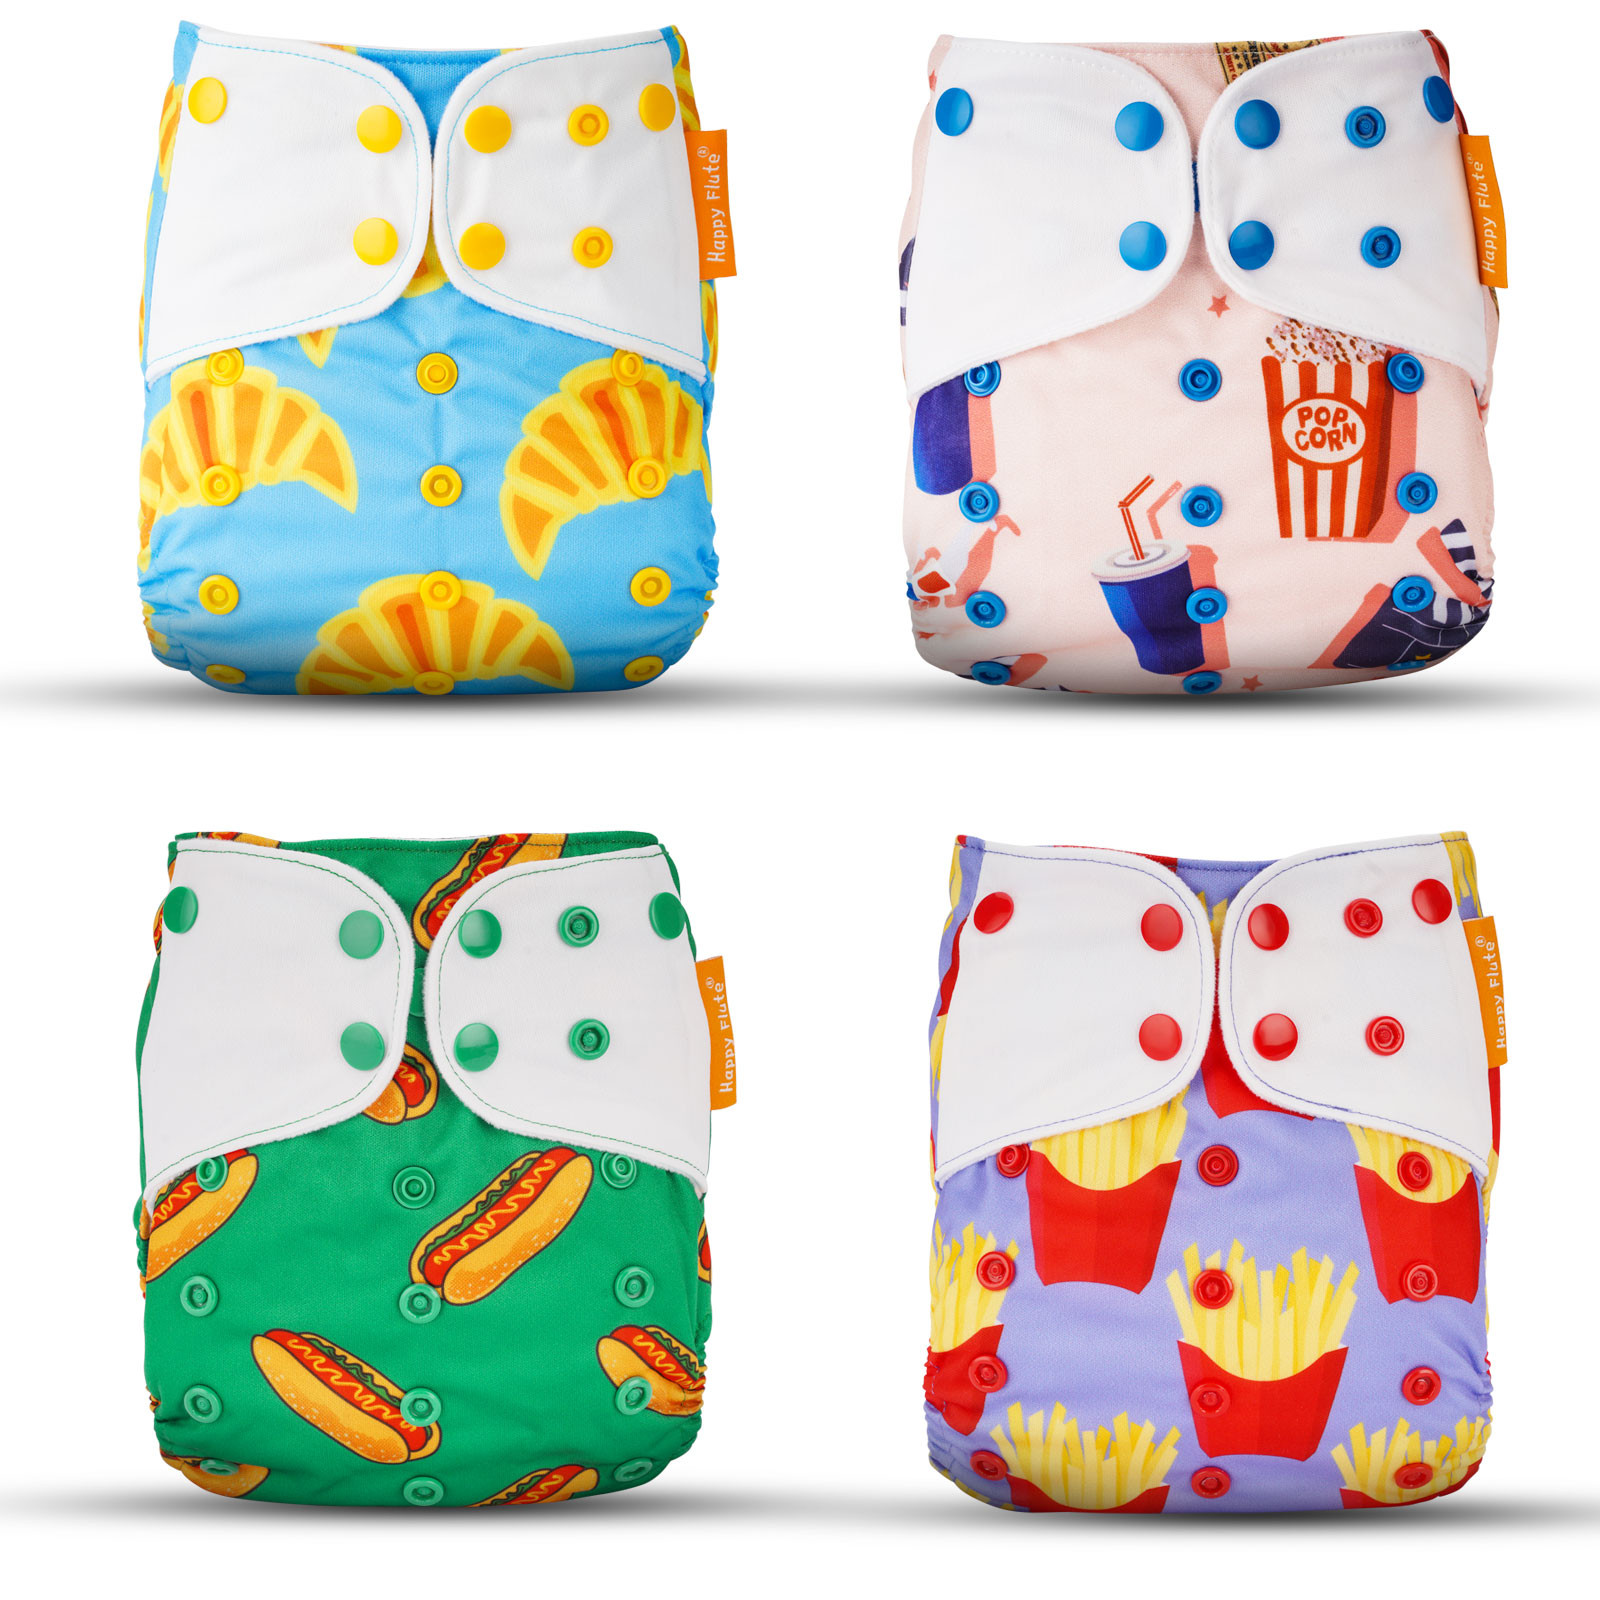 MENGS® Baby Cloth Diapers Adjustable Washable And Reusable Pocket Diapers For Baby Girls (4PCS)